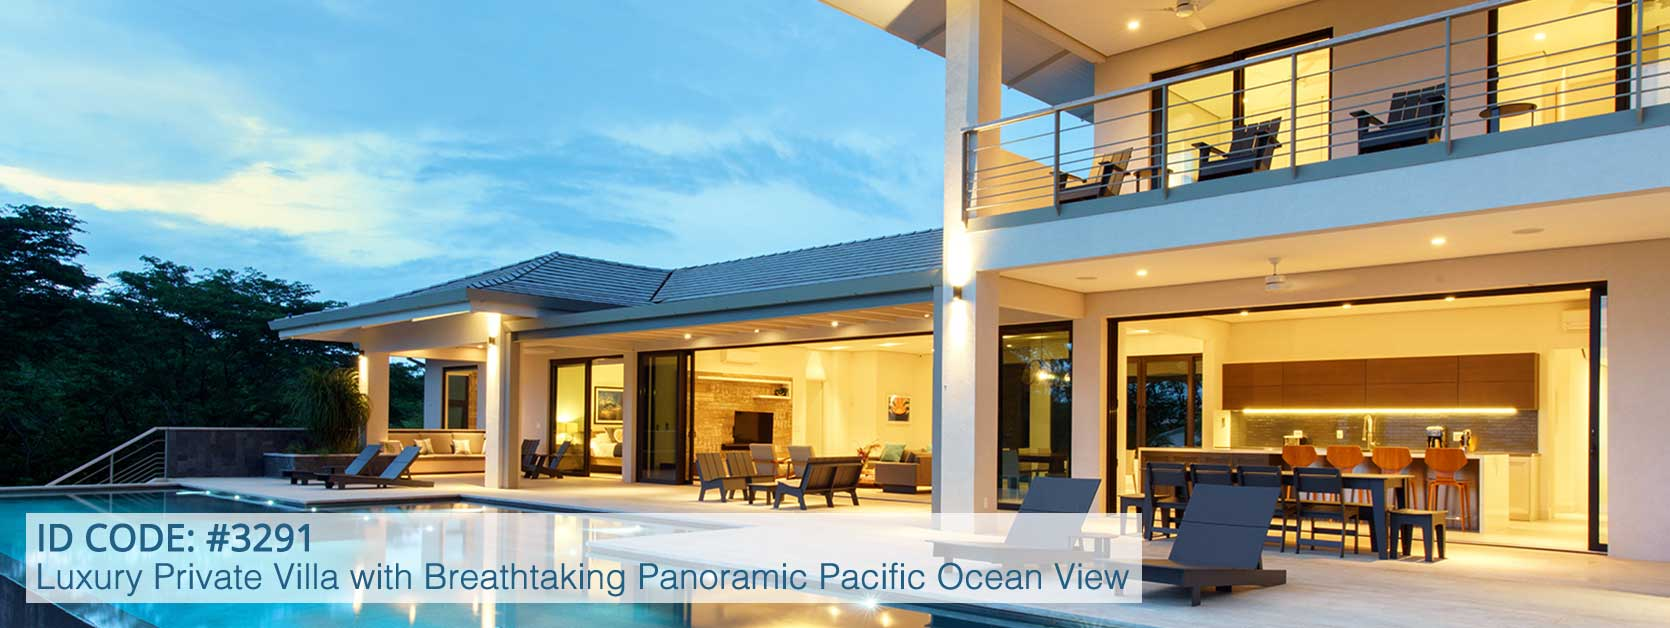 Contemporary, Luxury Private Villa with Breathtaking Panoramic Pacific Ocean View